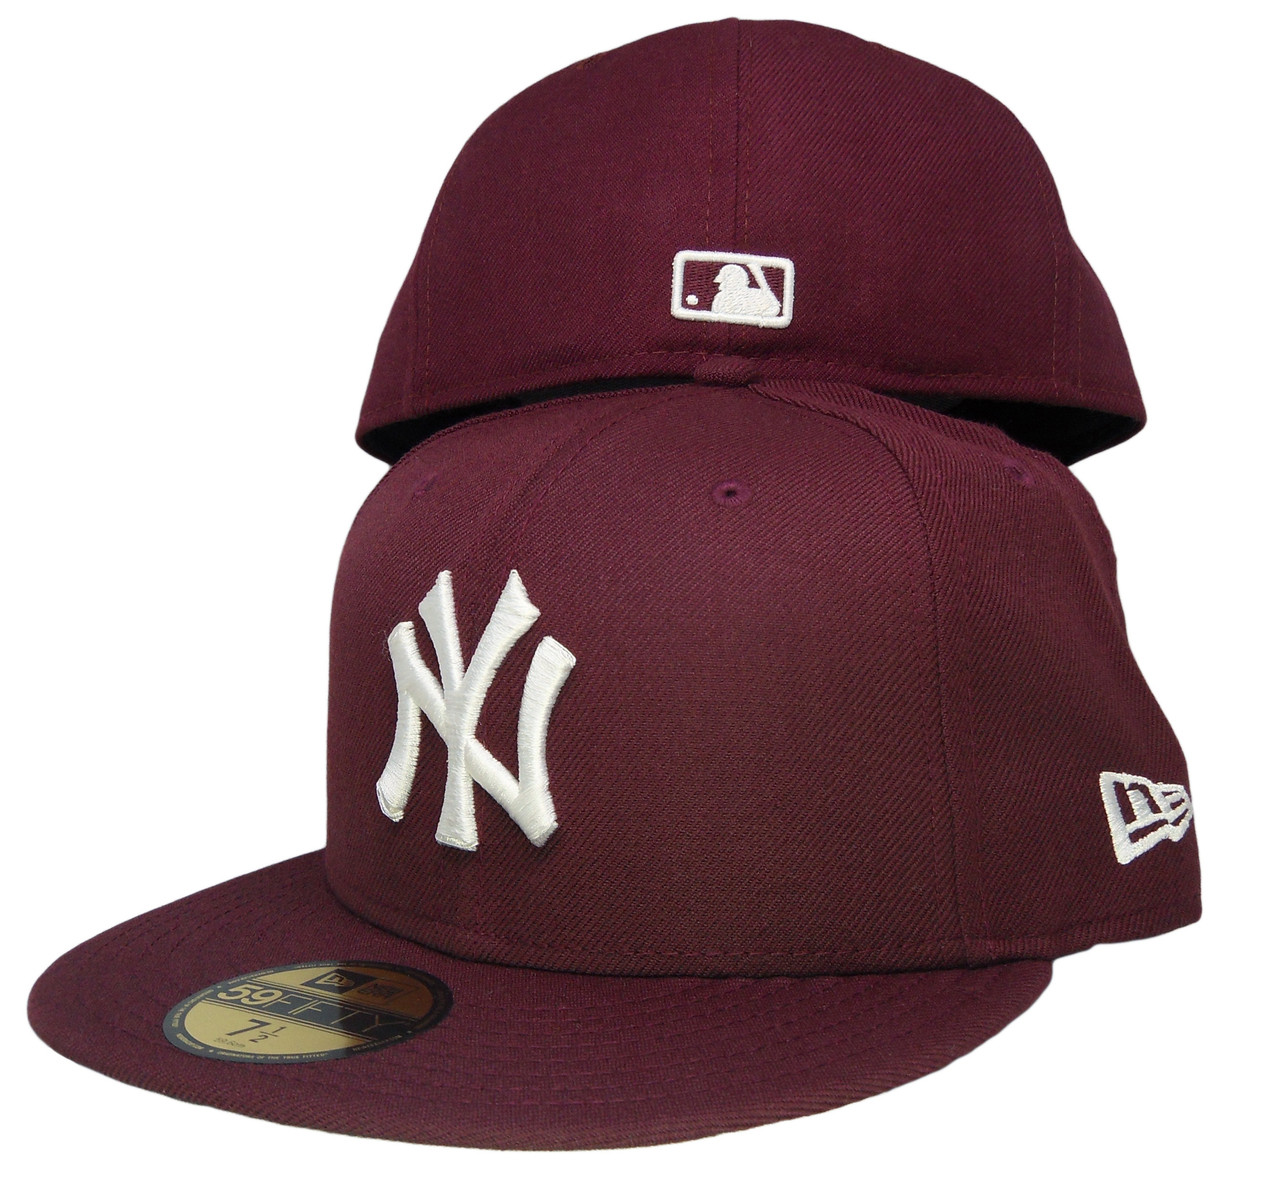 f323443605 New York Yankees New Era 59Fifty Basic Fitted Hat - Maroon